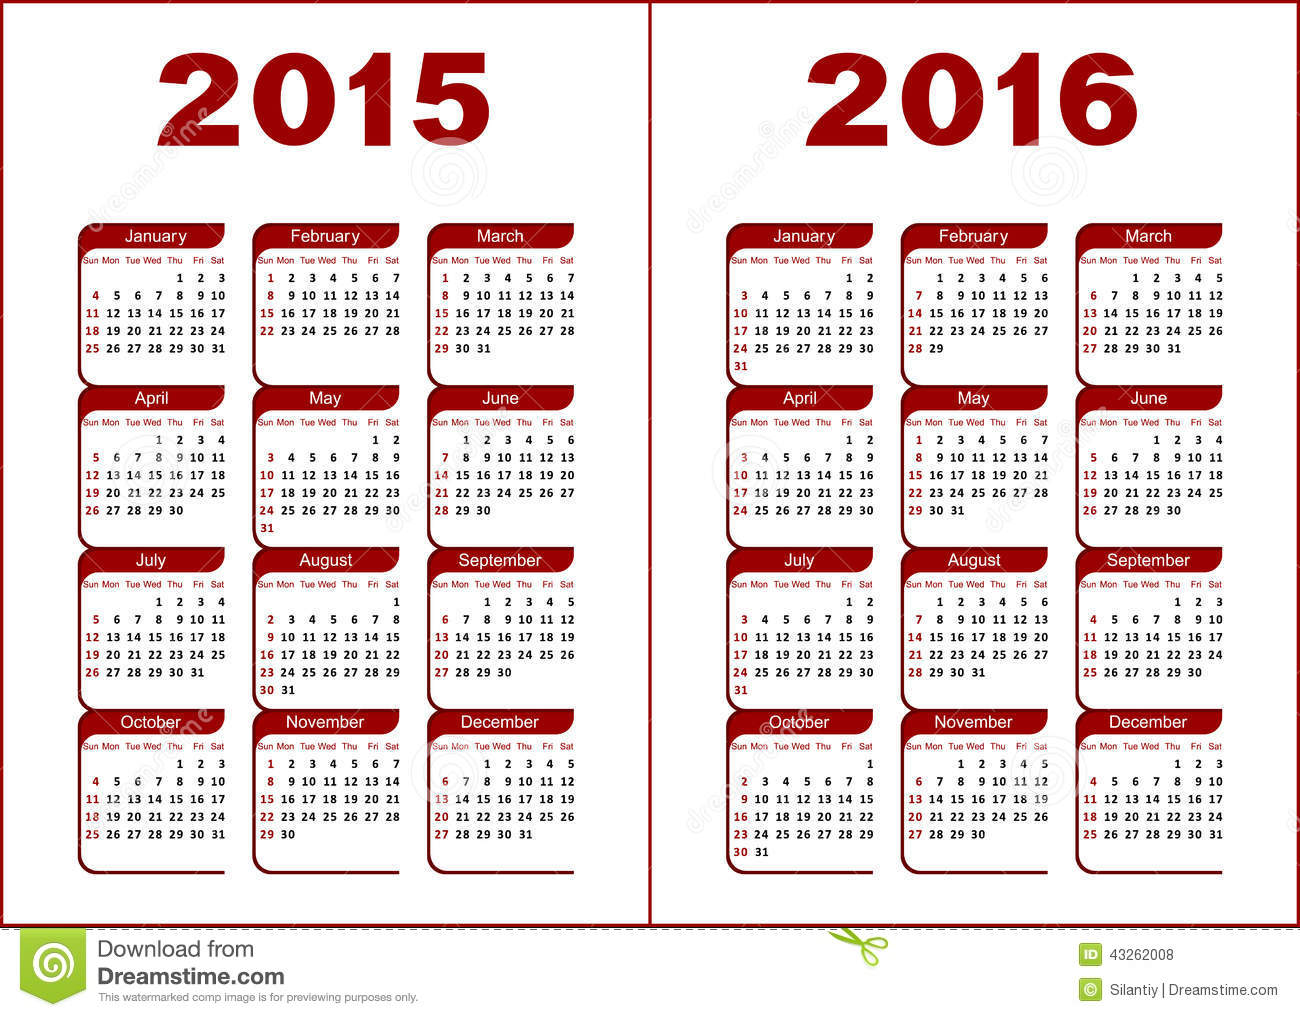 http://www.dreamstime.com/royalty-free-stock-photos-calendar-red-black ...